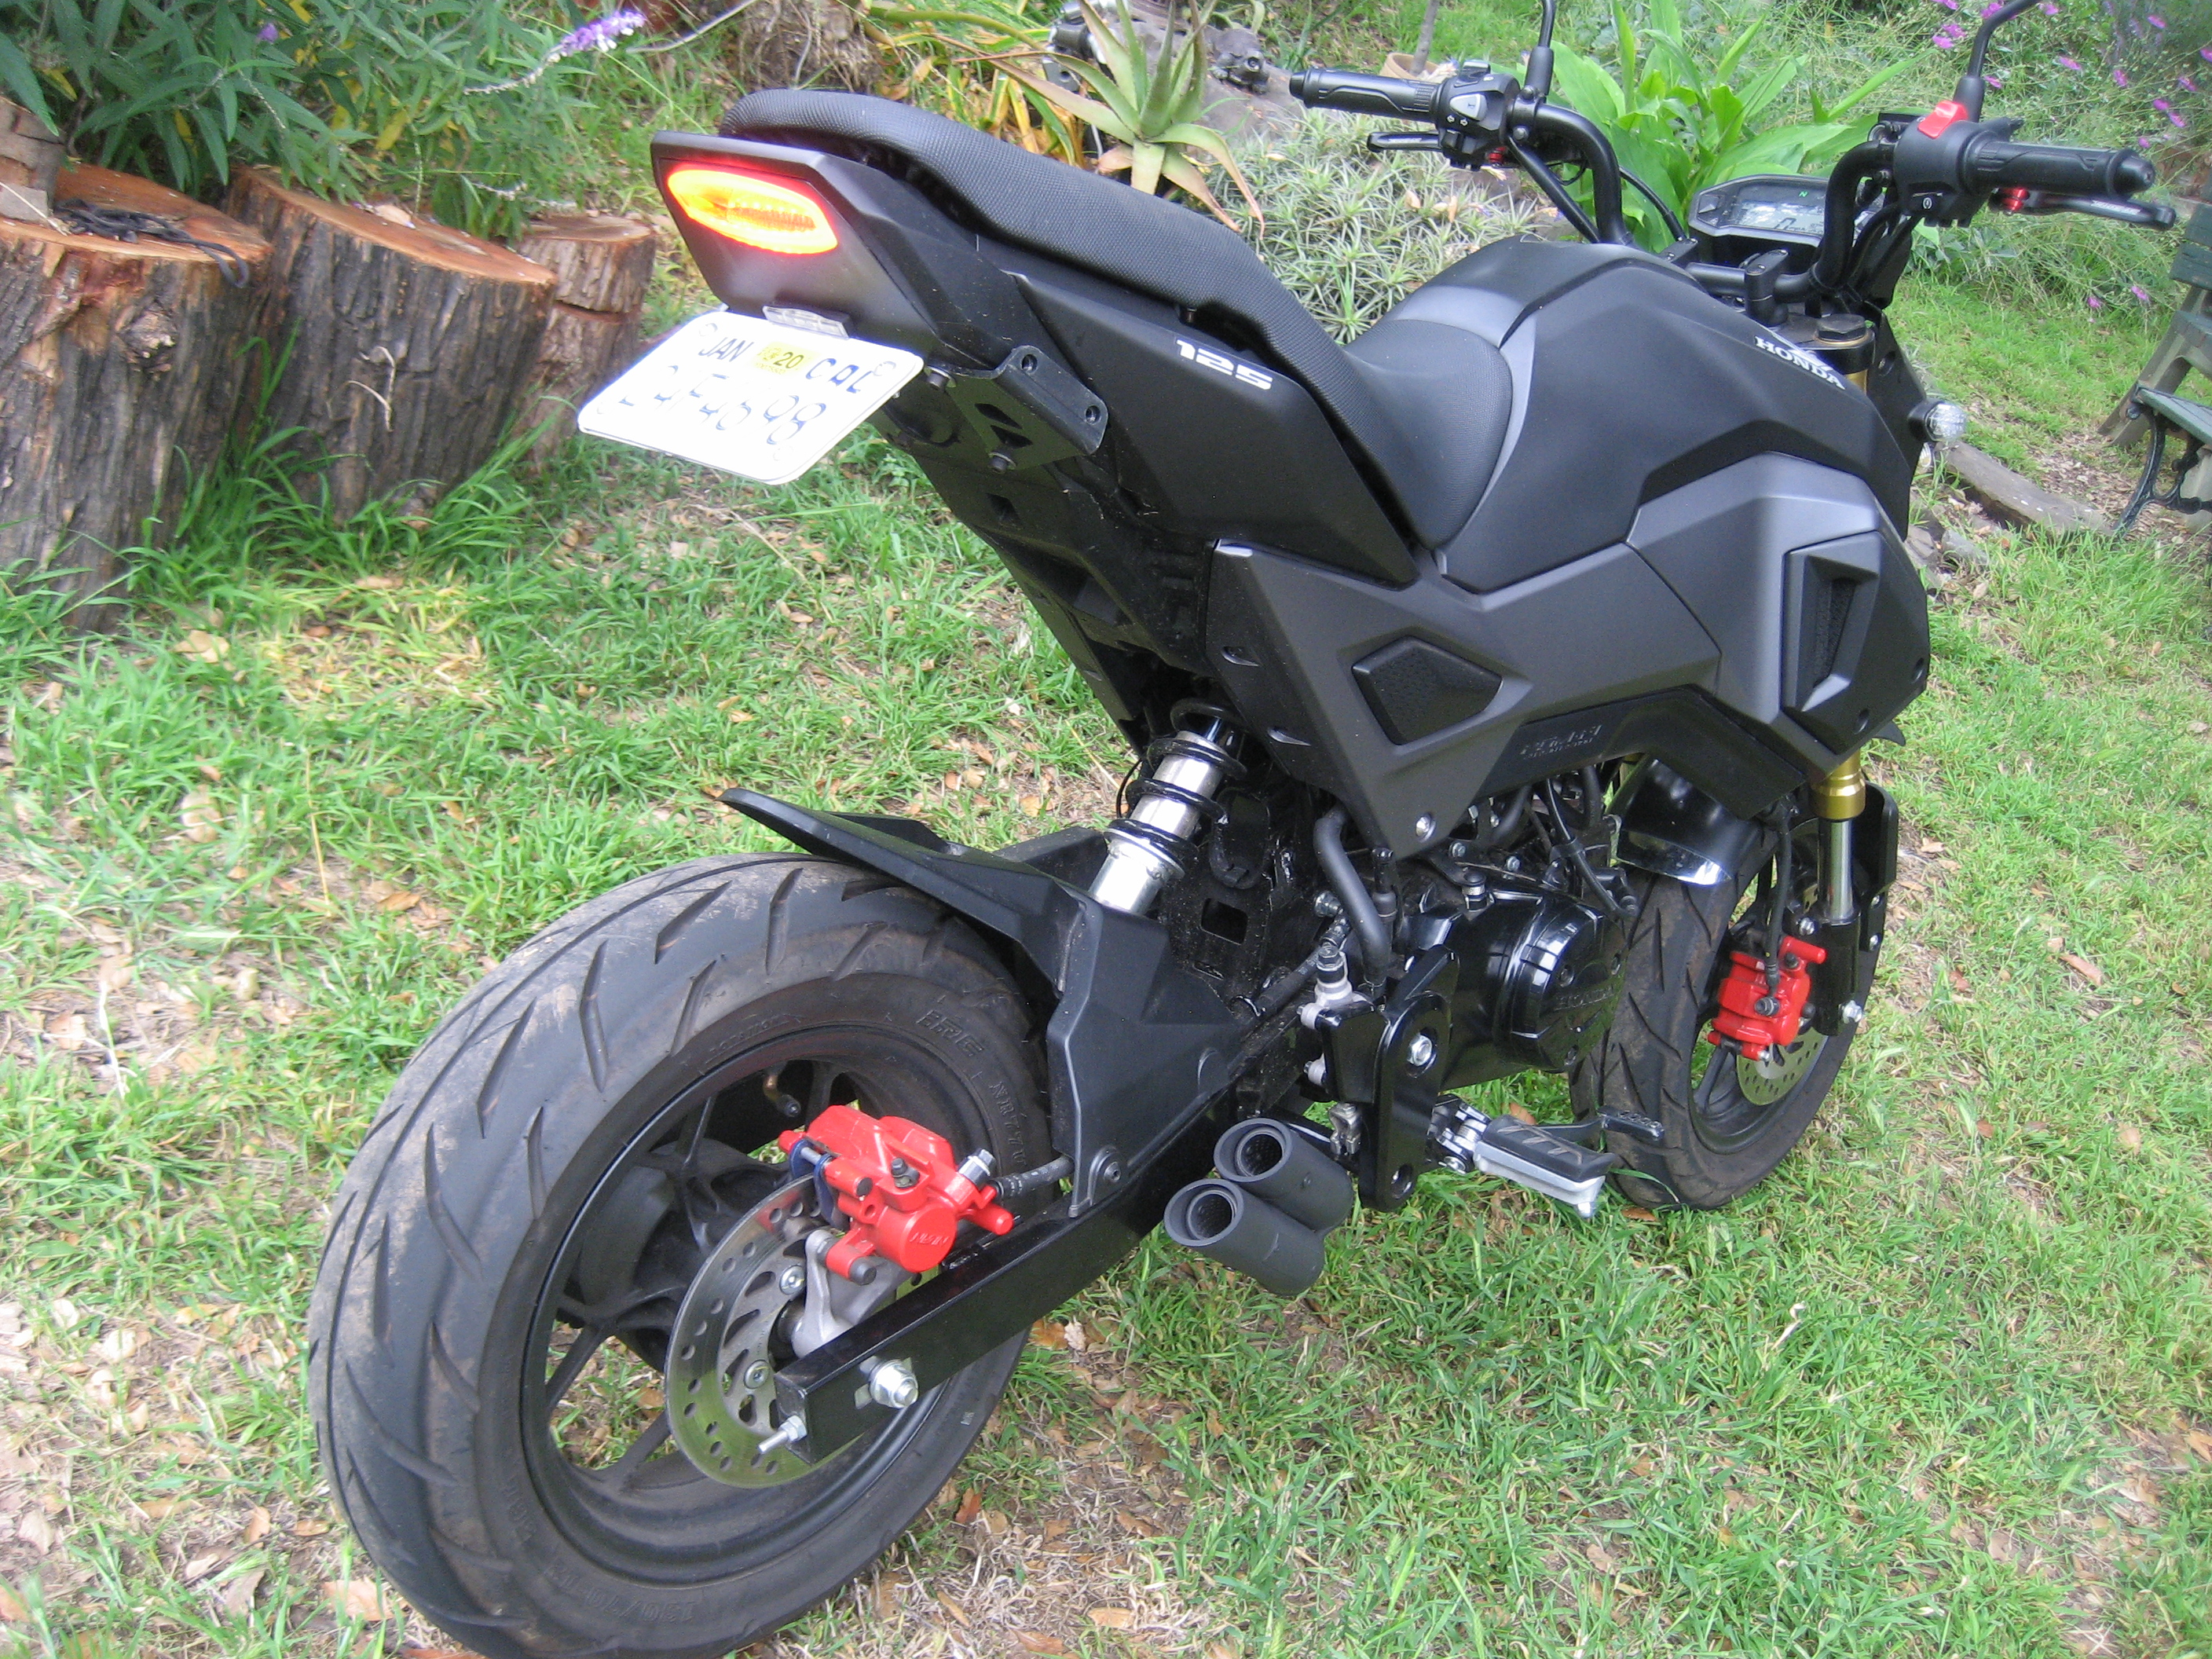 Which exhaust to buy? Msx125 sf-img_1168.jpg